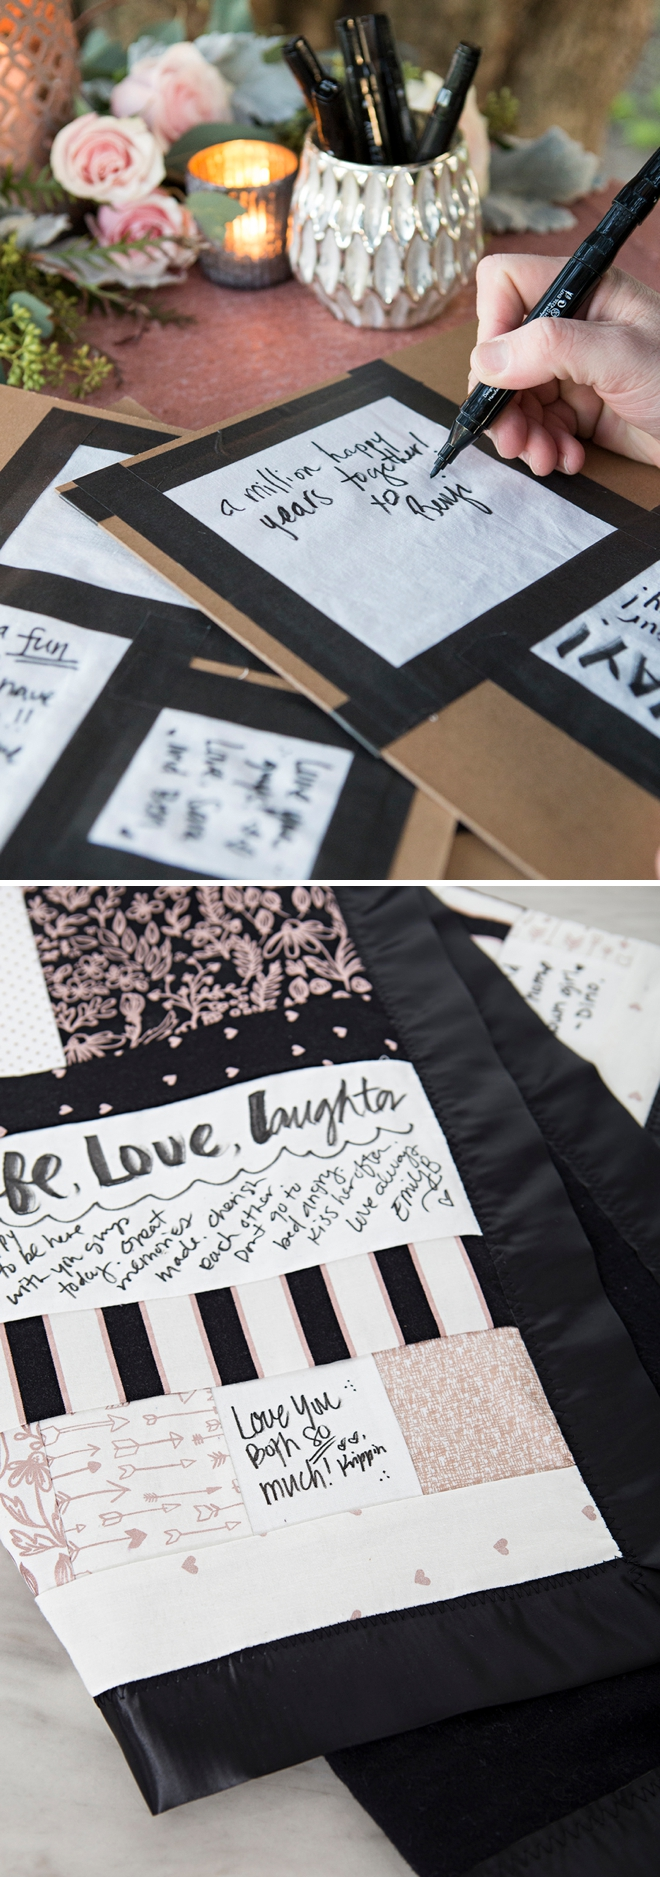 How to make a guest book quilt, from start to finish!